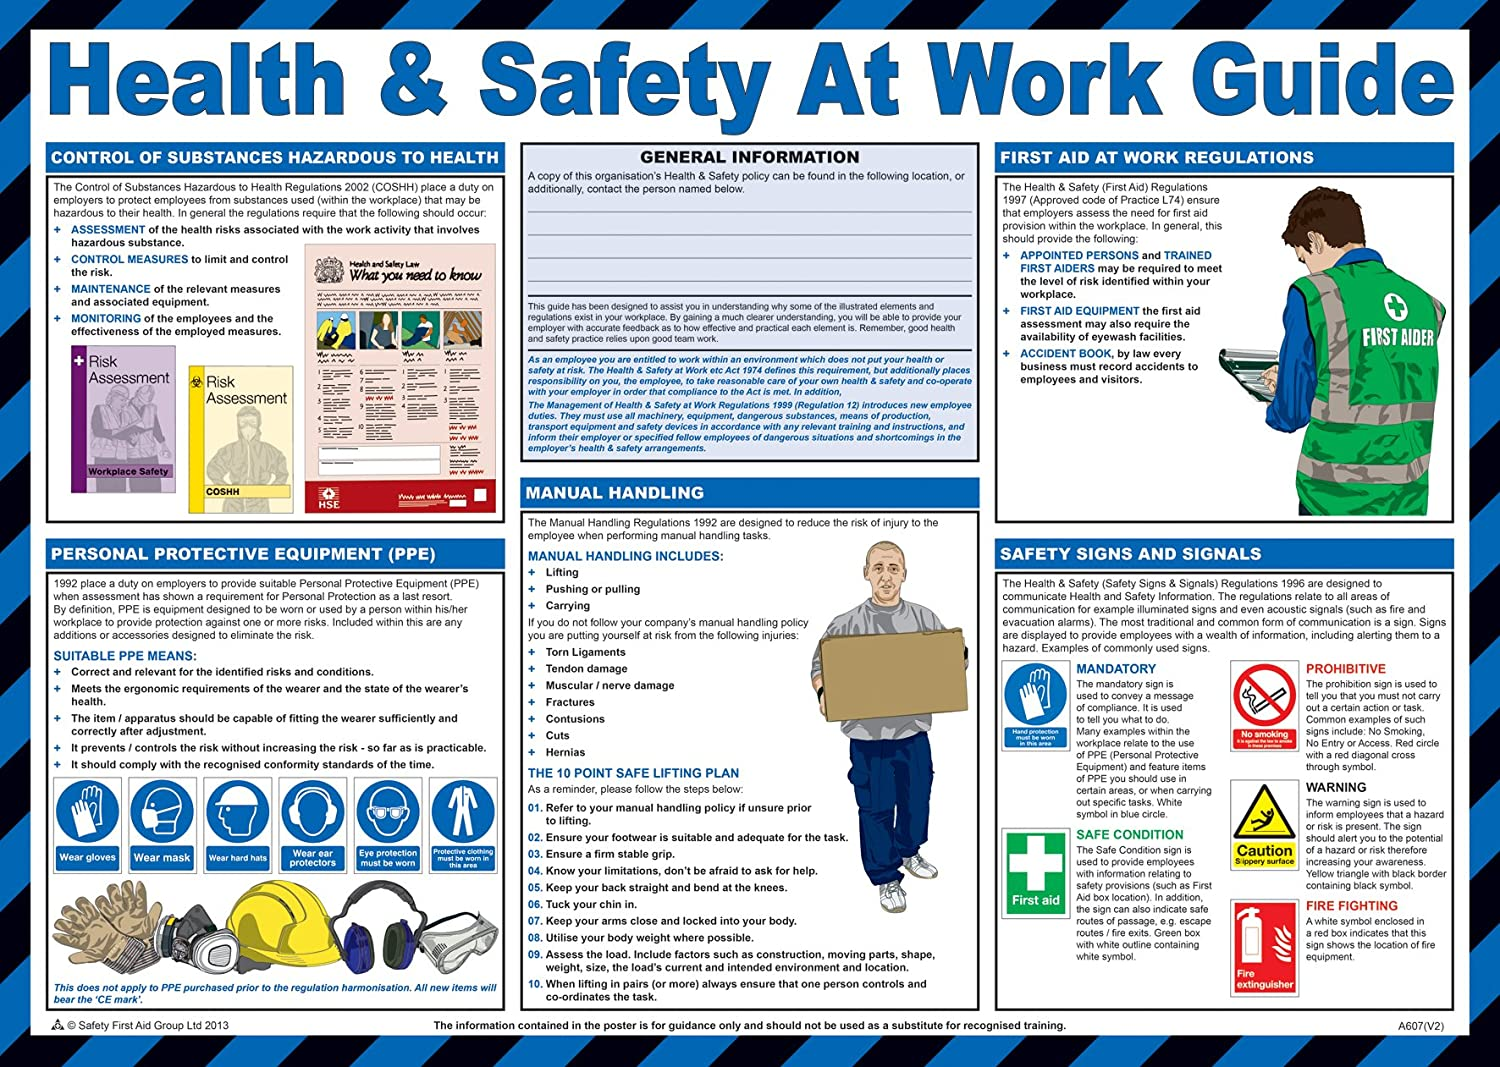 Safety First Aid Laminated Health and Safety at Work Guide Poster ...